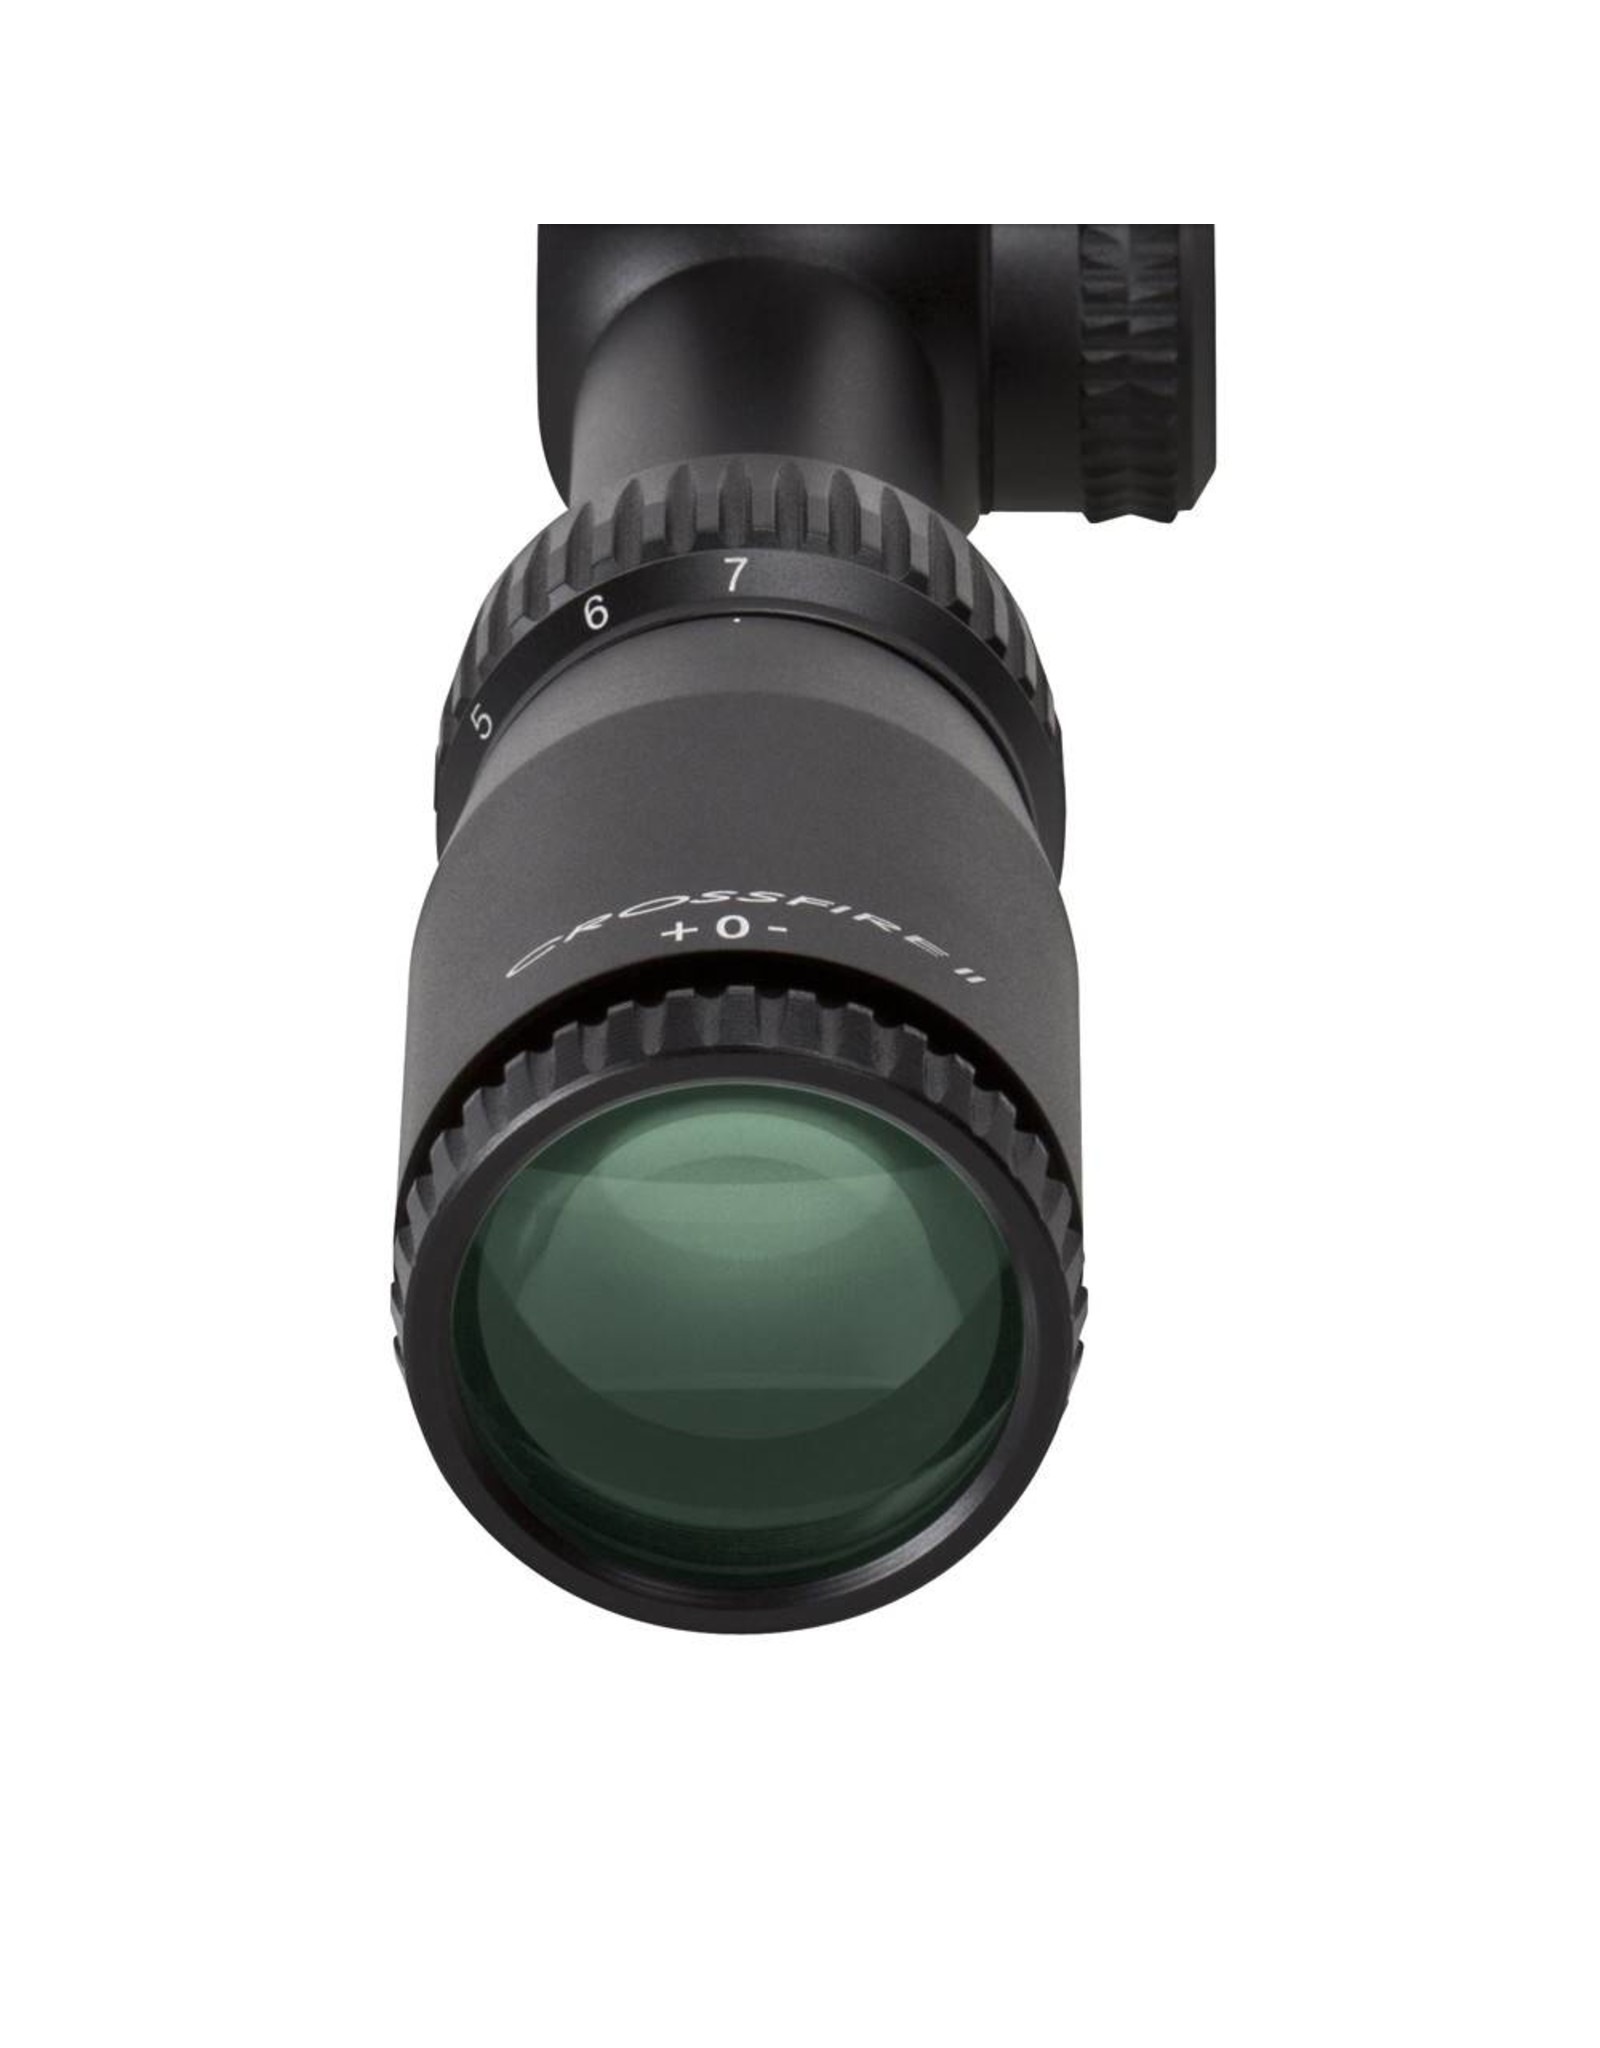 Vortex Vortex Crossfire II 2-7x32 Scout Scope V-Plex